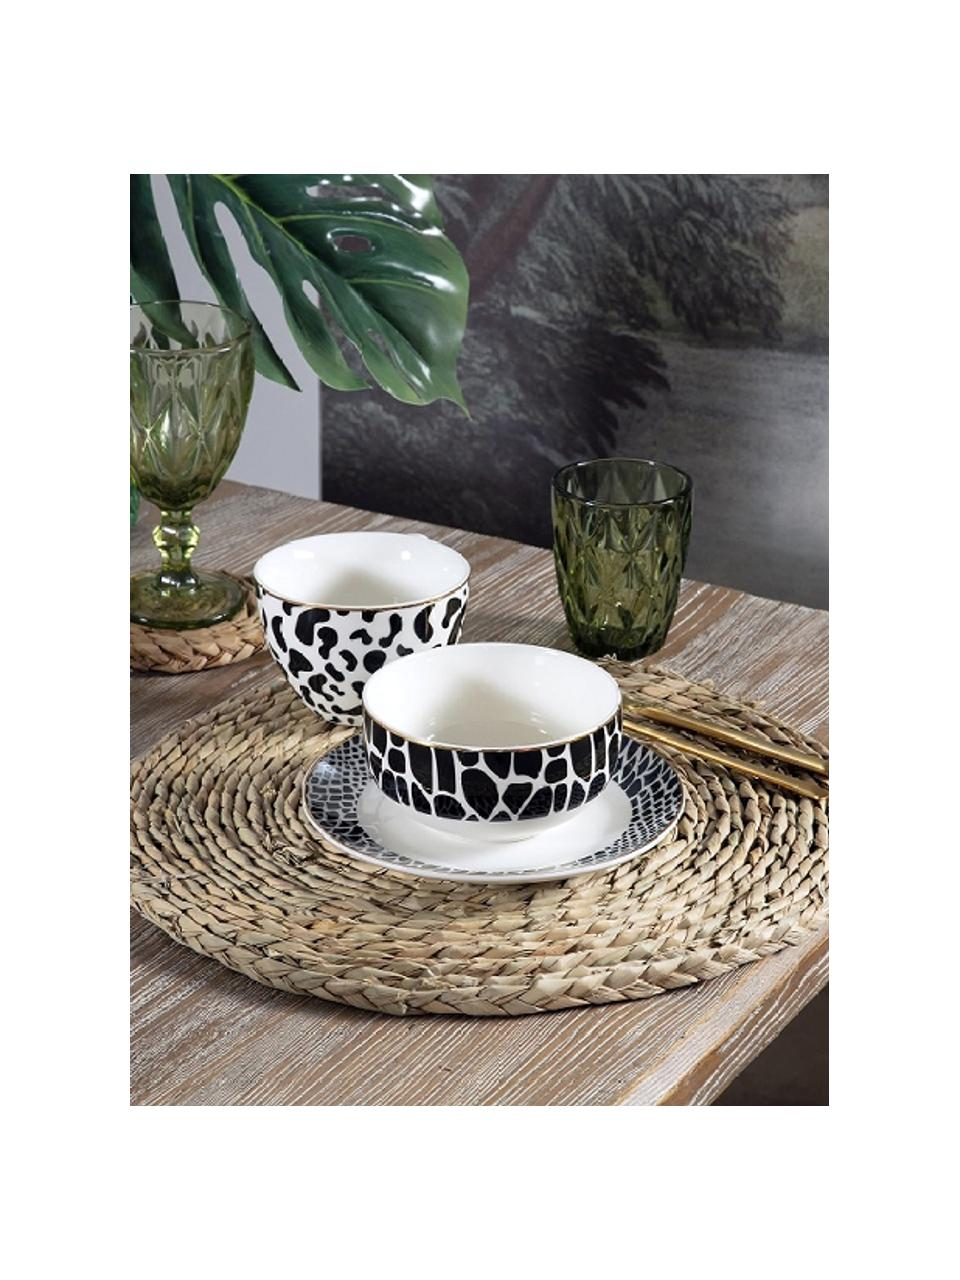 Tasse Wild Jungle, 4 élém., Noir, blanc